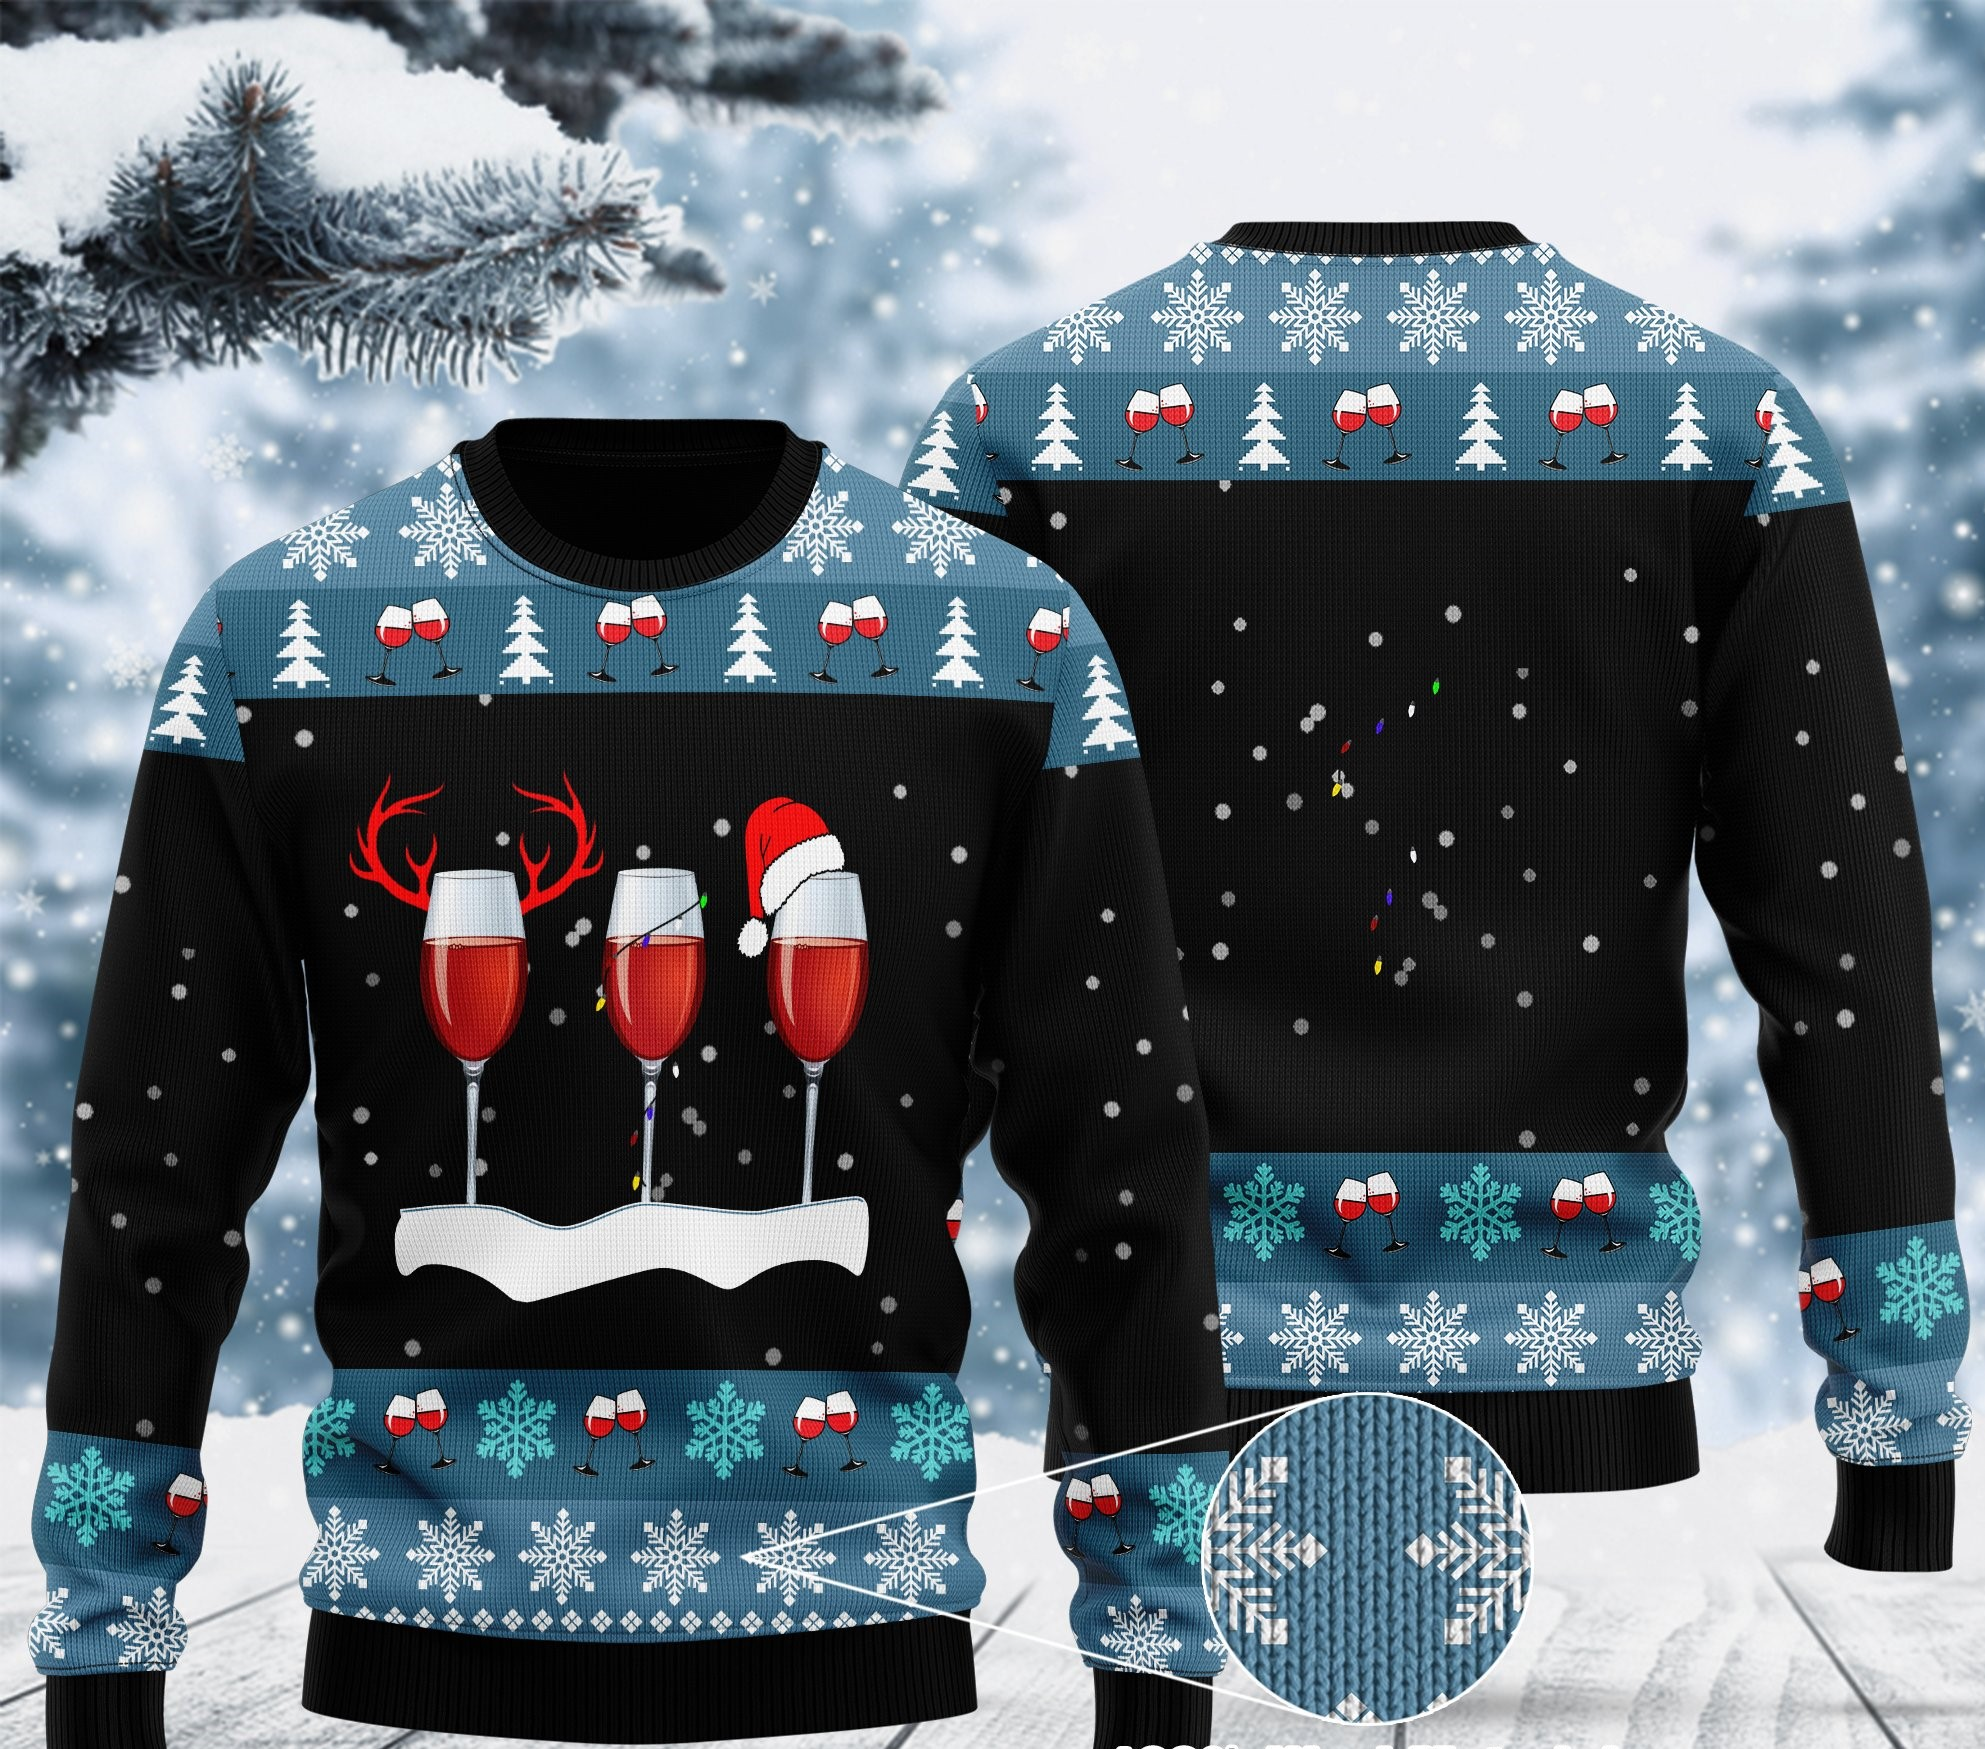 merry christmas with red wine ugly christmas sweater 2 - Copy (2)